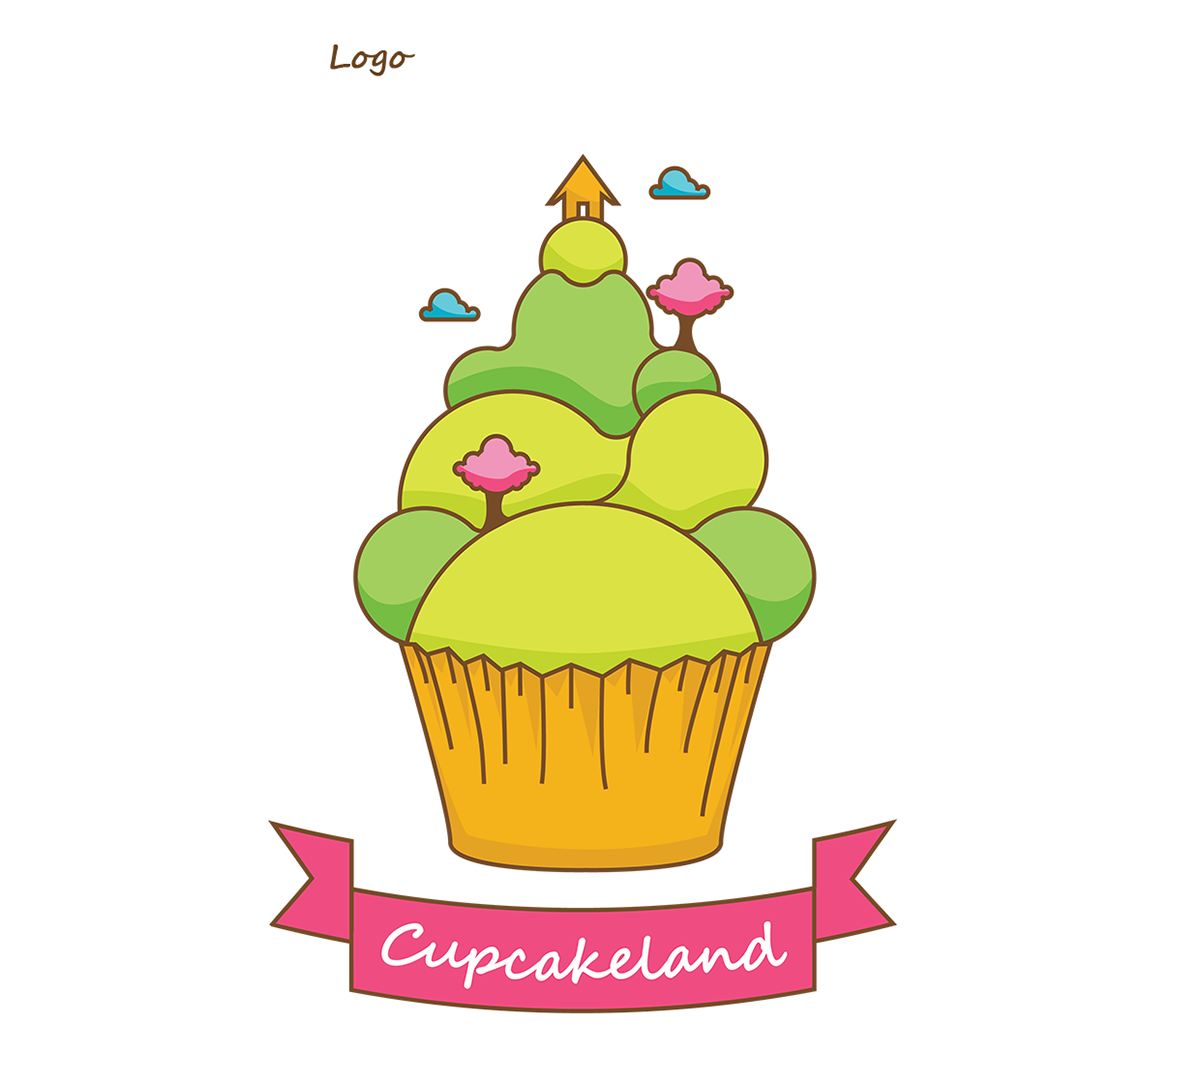 Cupcakeland - Manual de identidade visual